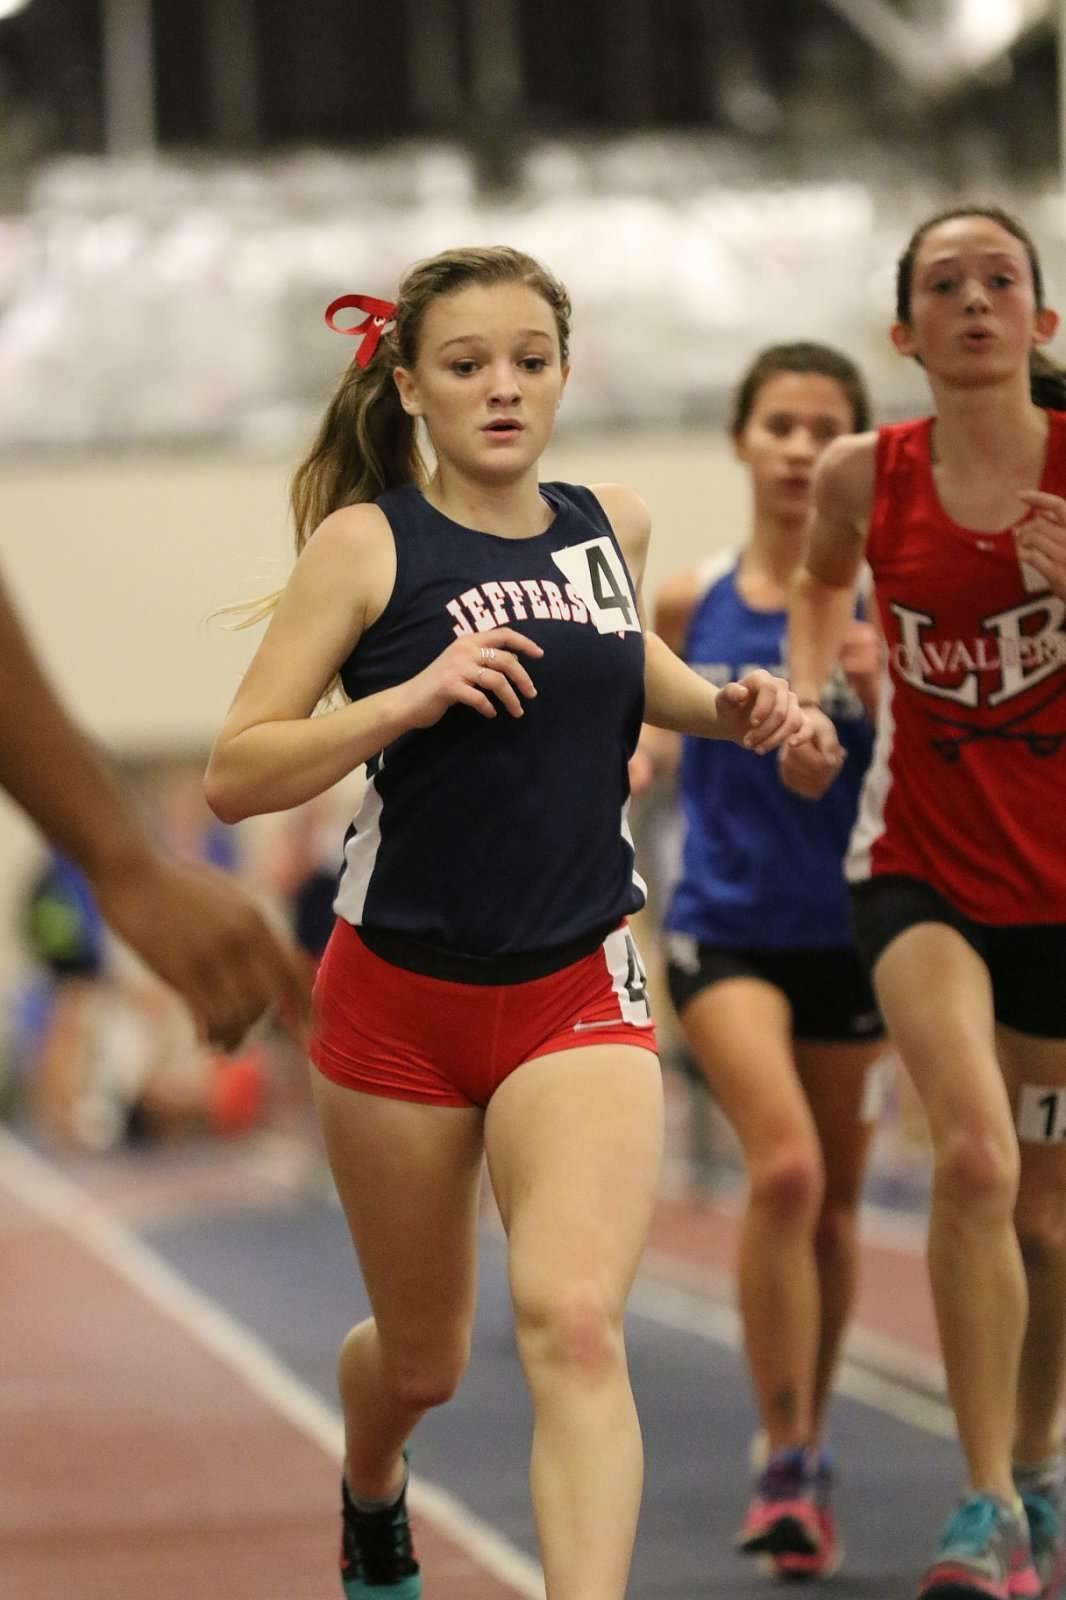 Junior Nora Thompson gives her all at a track meet.  Thompson has been participating in Jefferson track since freshman year.